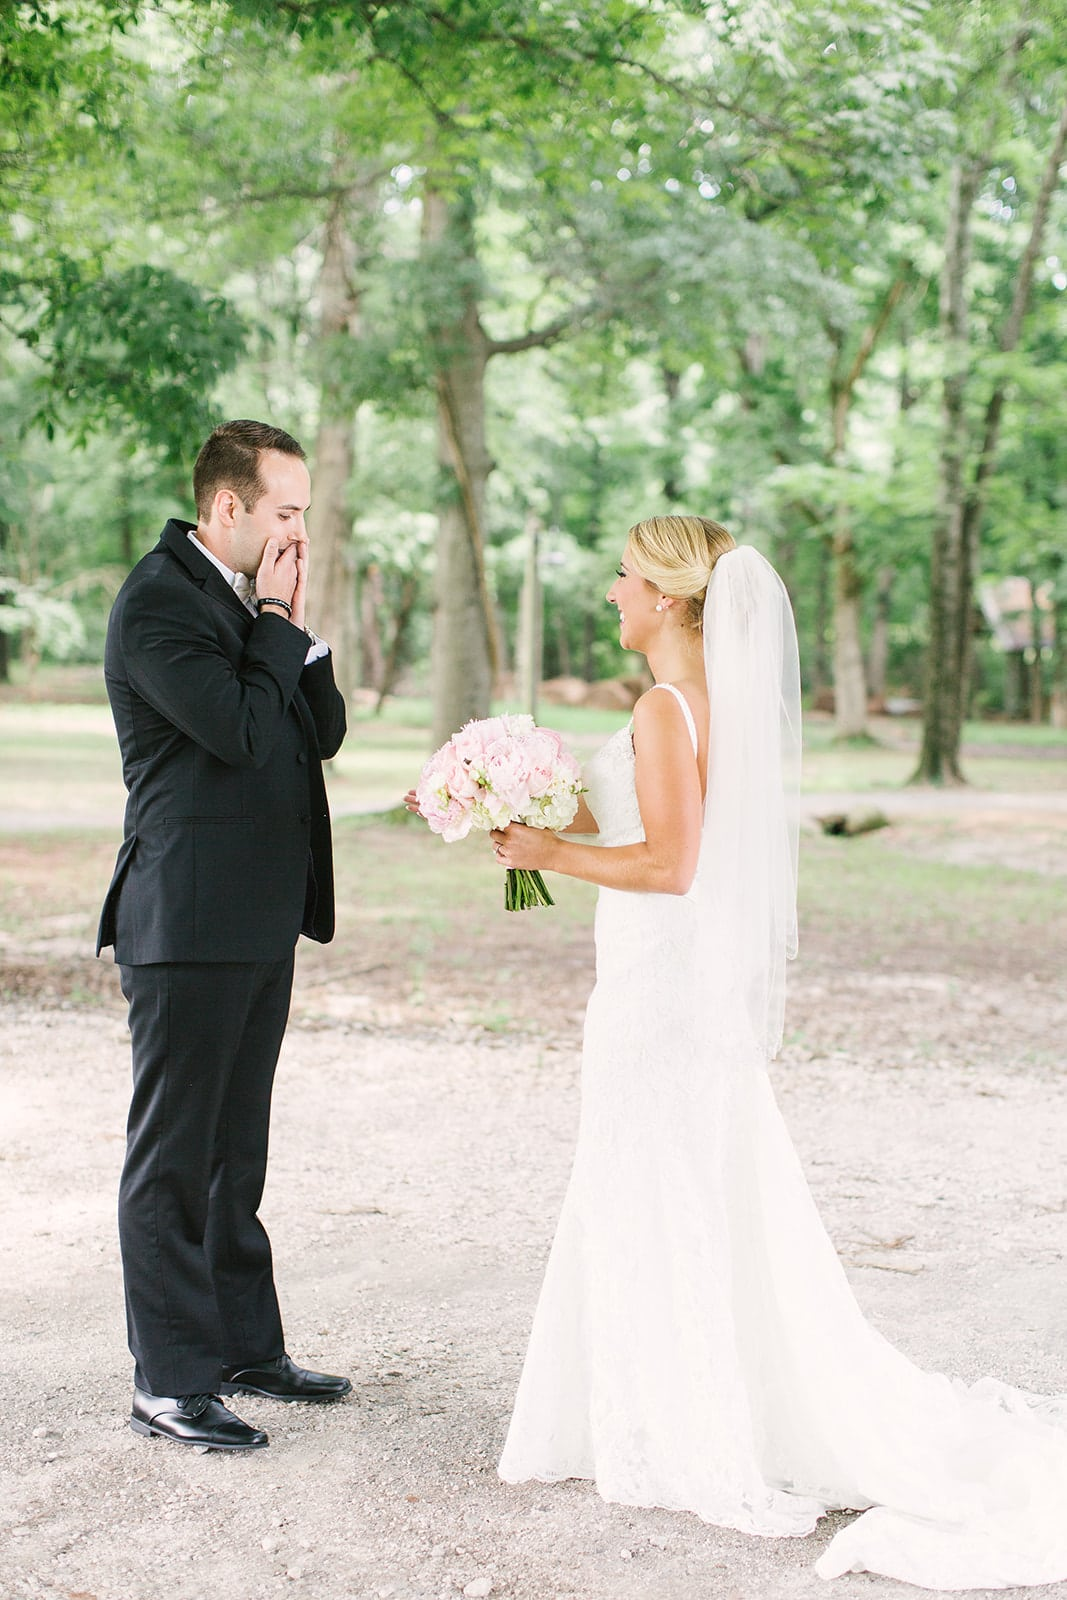 Groom shows off a surprised look as he sees his bride for the first time before their spring wedding at The Diary Barn in Fort Mill. South Carolina